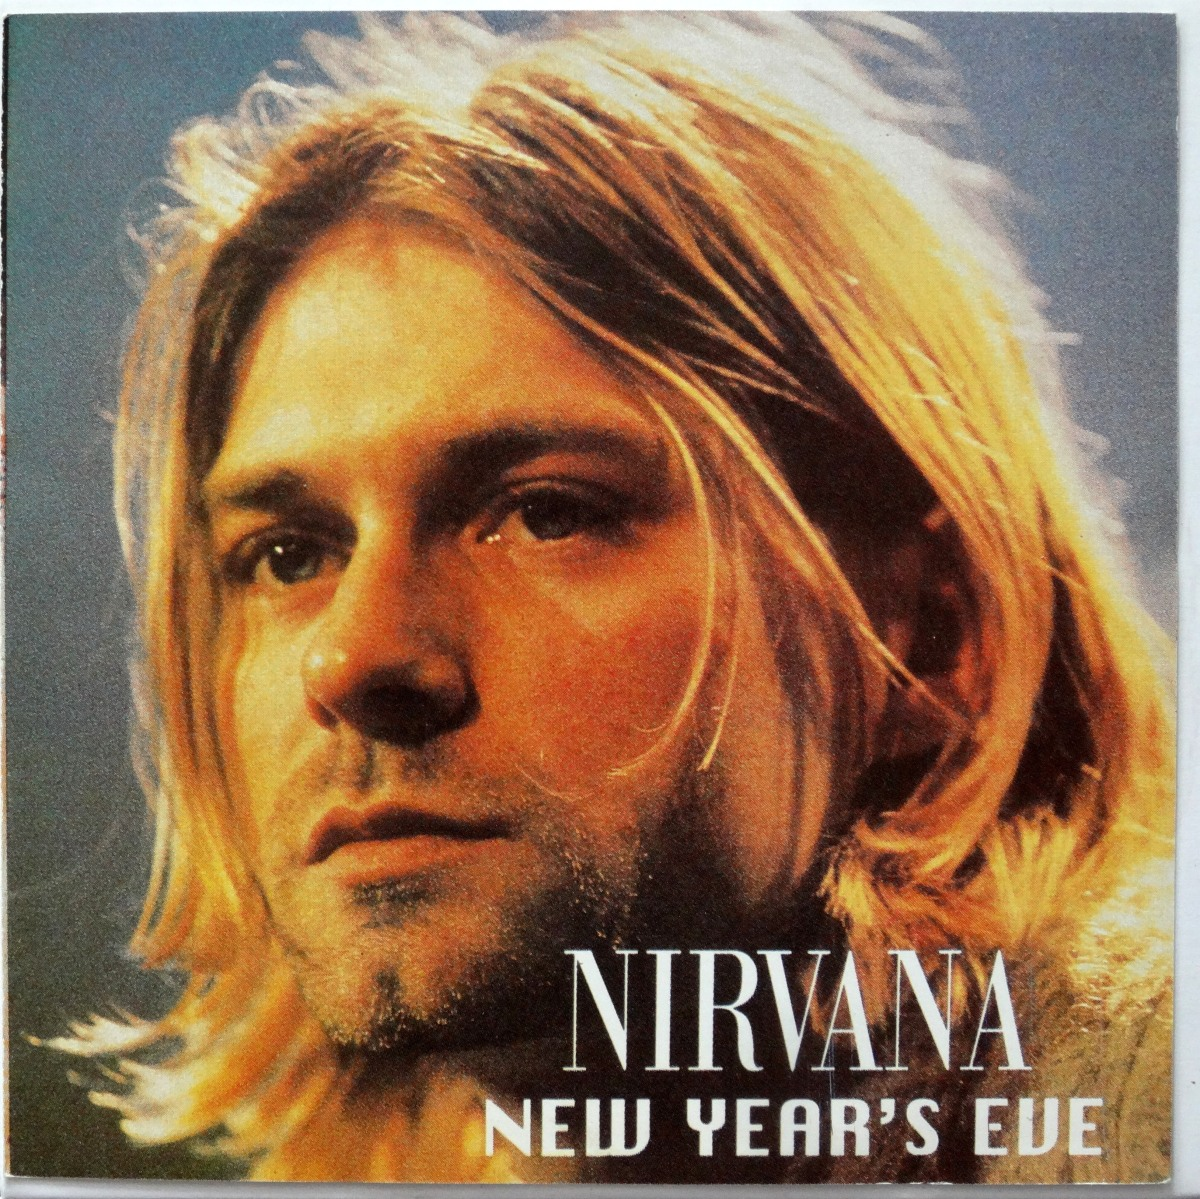 From the Stacks: Nirvana Bootlegs